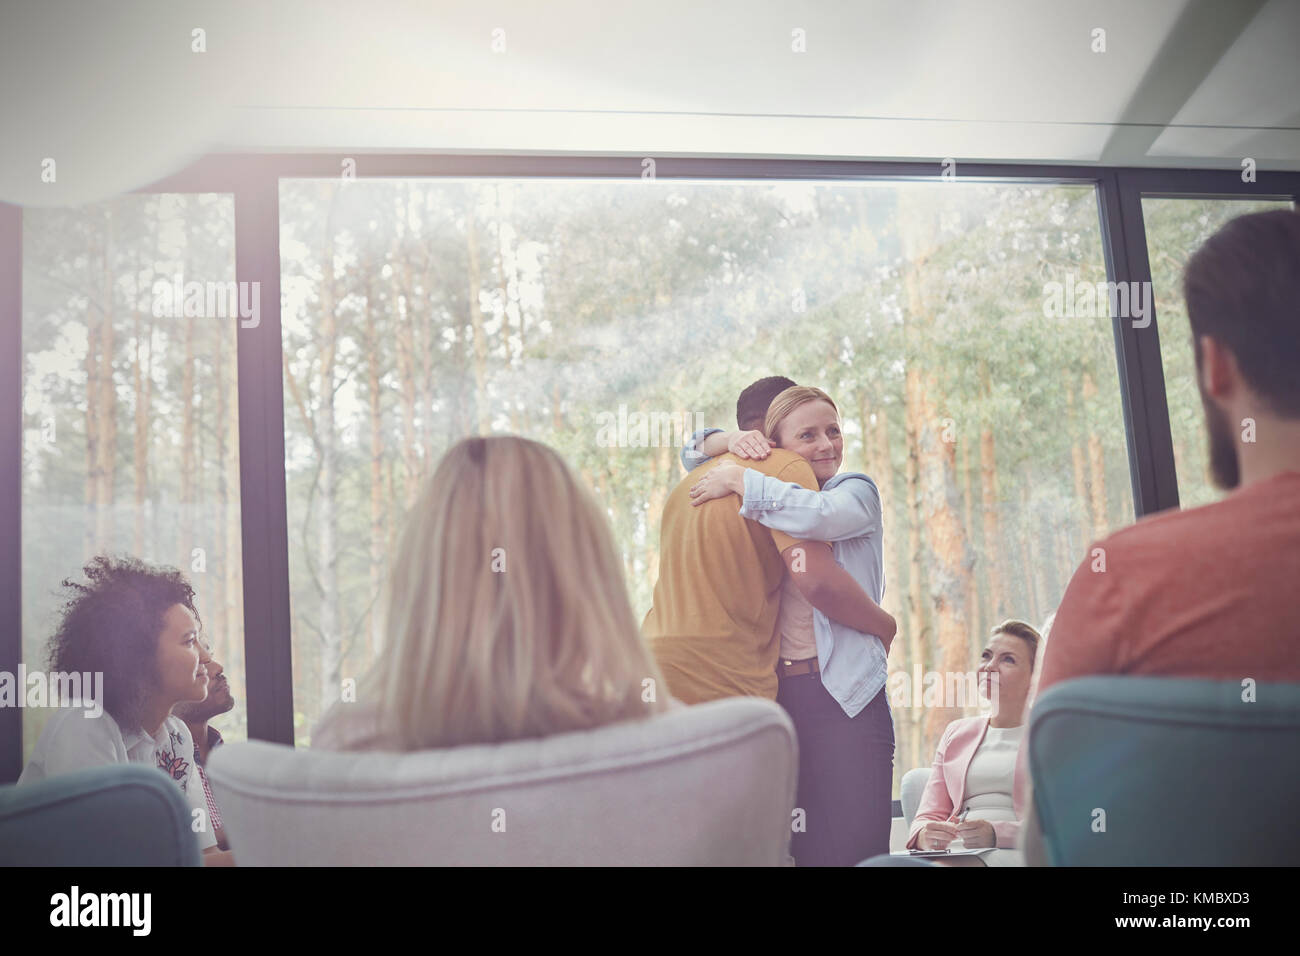 Man and woman hugging in group therapy session - Stock Image